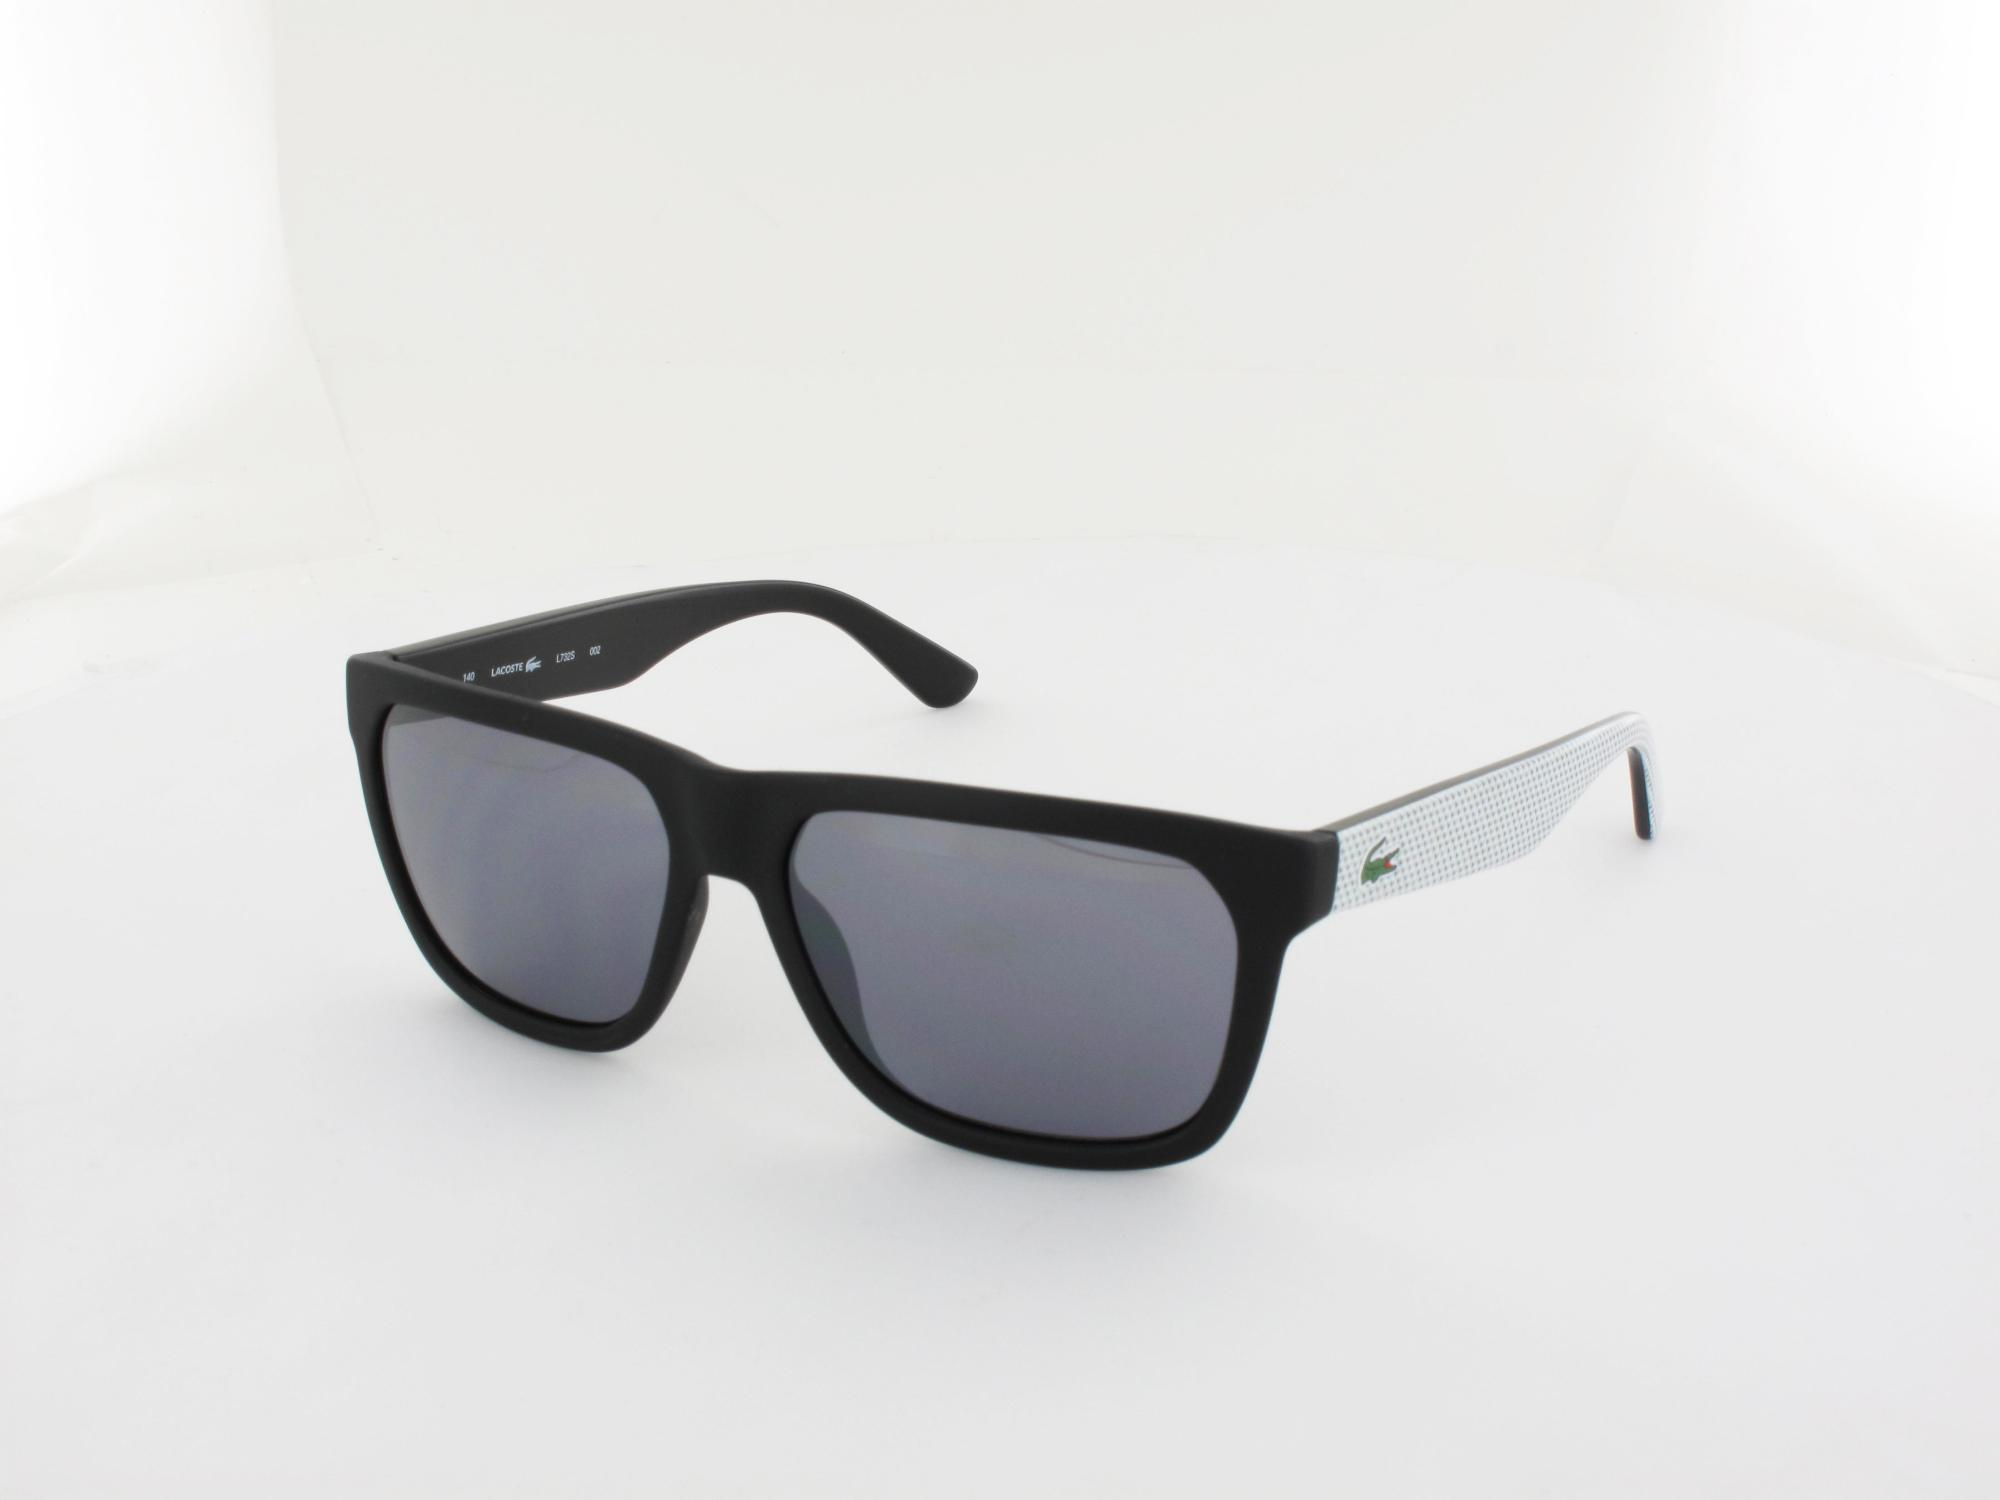 Lacoste | L732S 002 56 | black matte white / grey